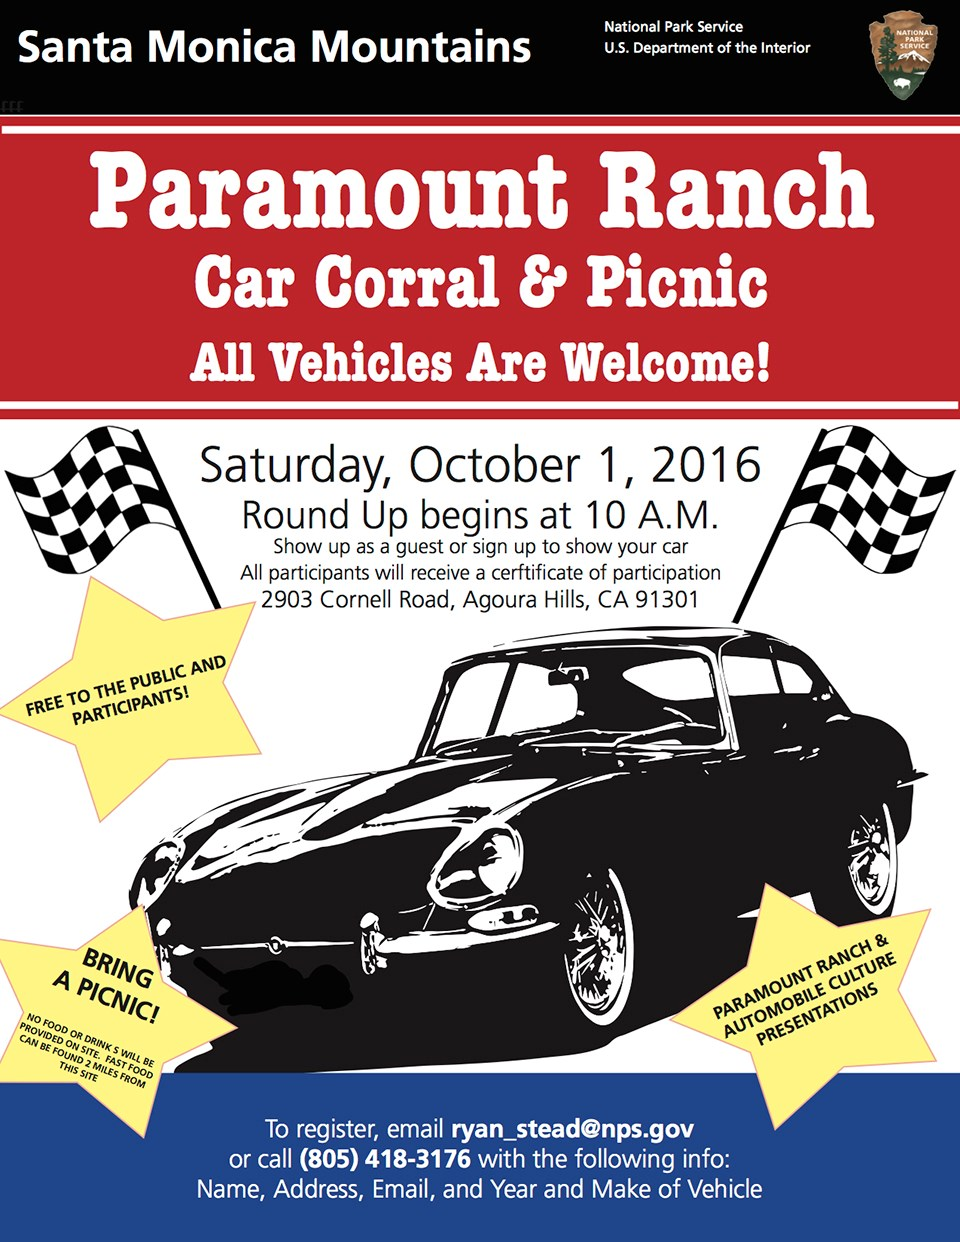 Car Corral & Picnic Flyer